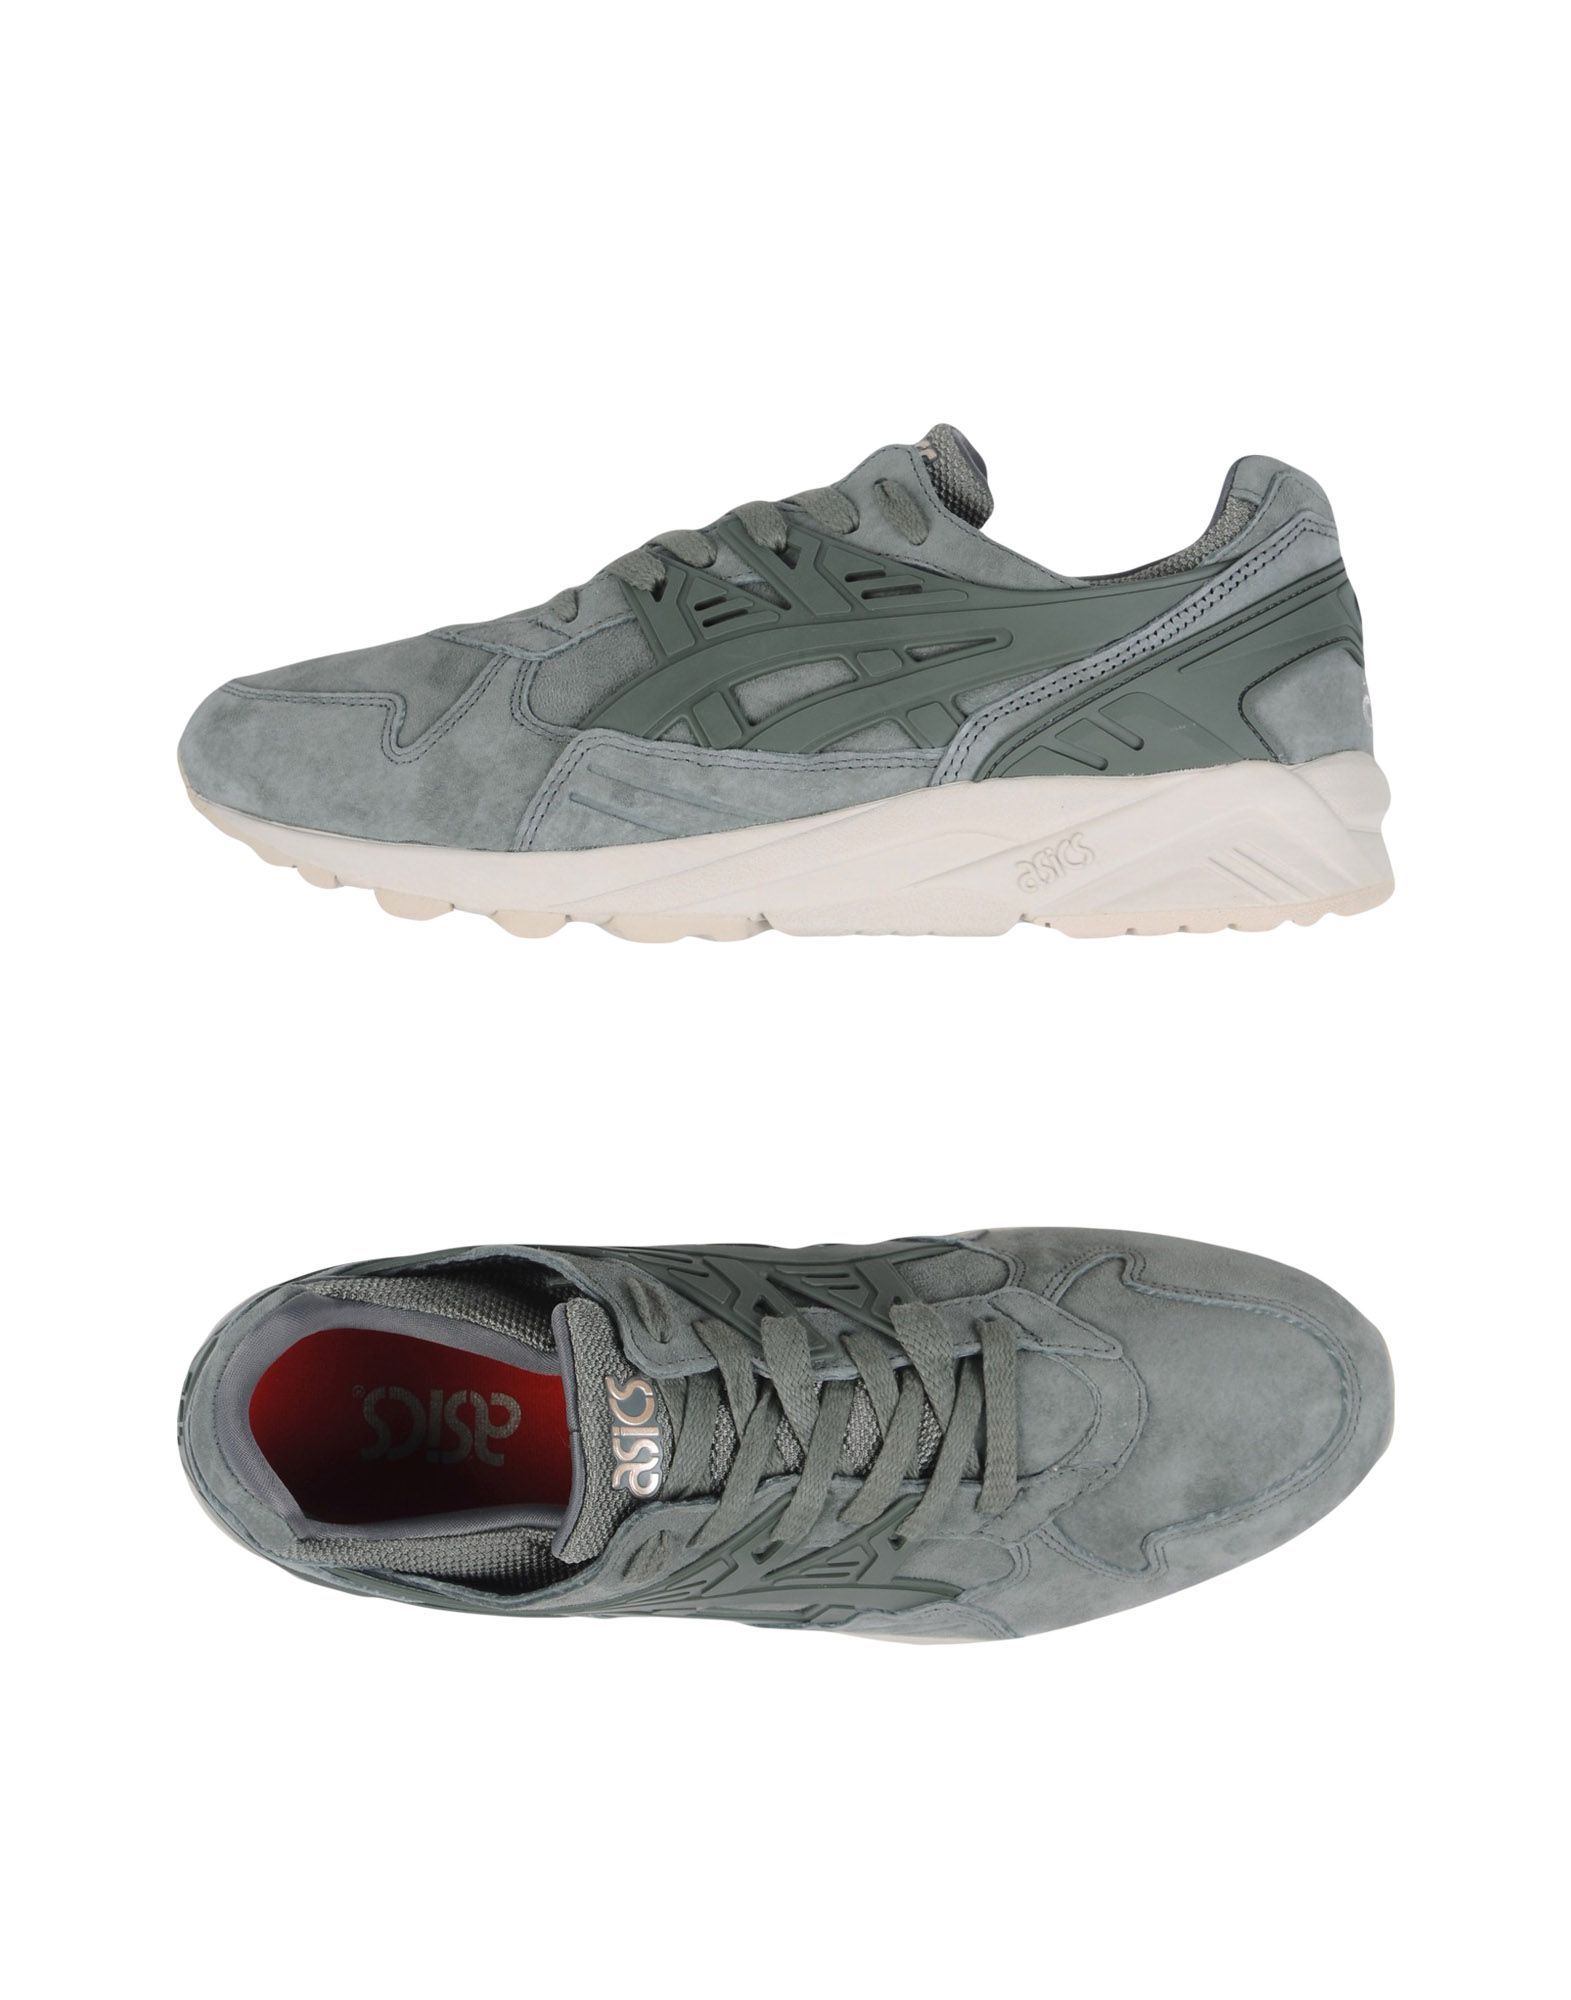 Sneakers Asics Tiger Kayano Trainer - Homme - Sneakers Asics Tiger sur